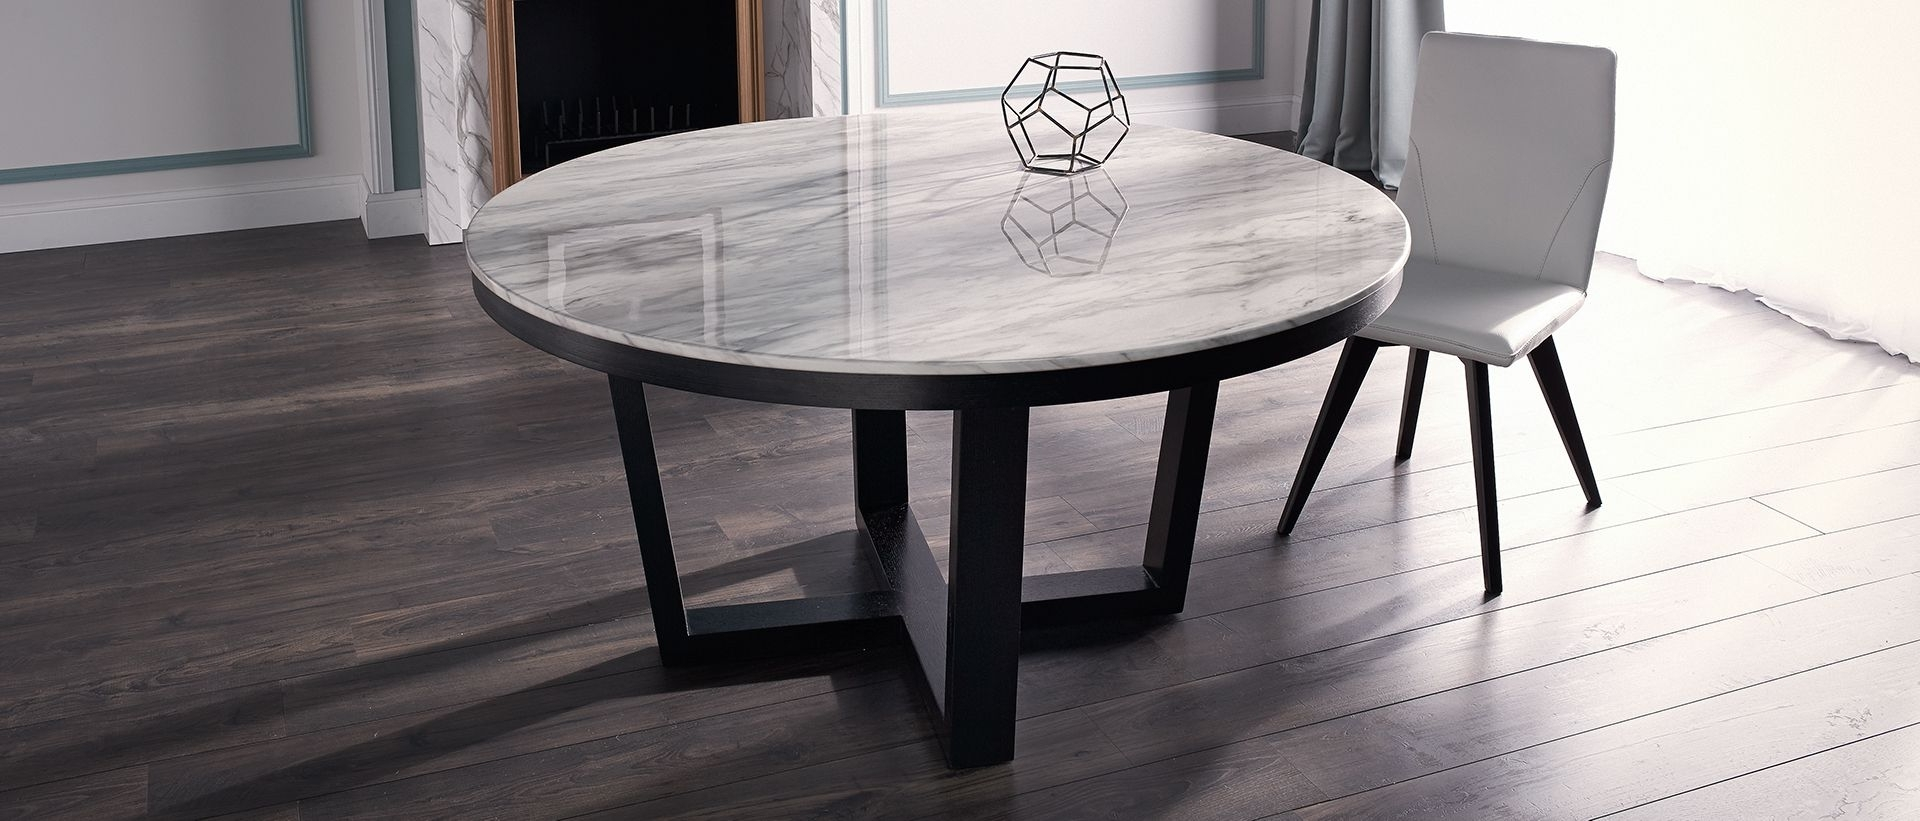 2017 Perth Glass Dining Tables pertaining to Nick Scali